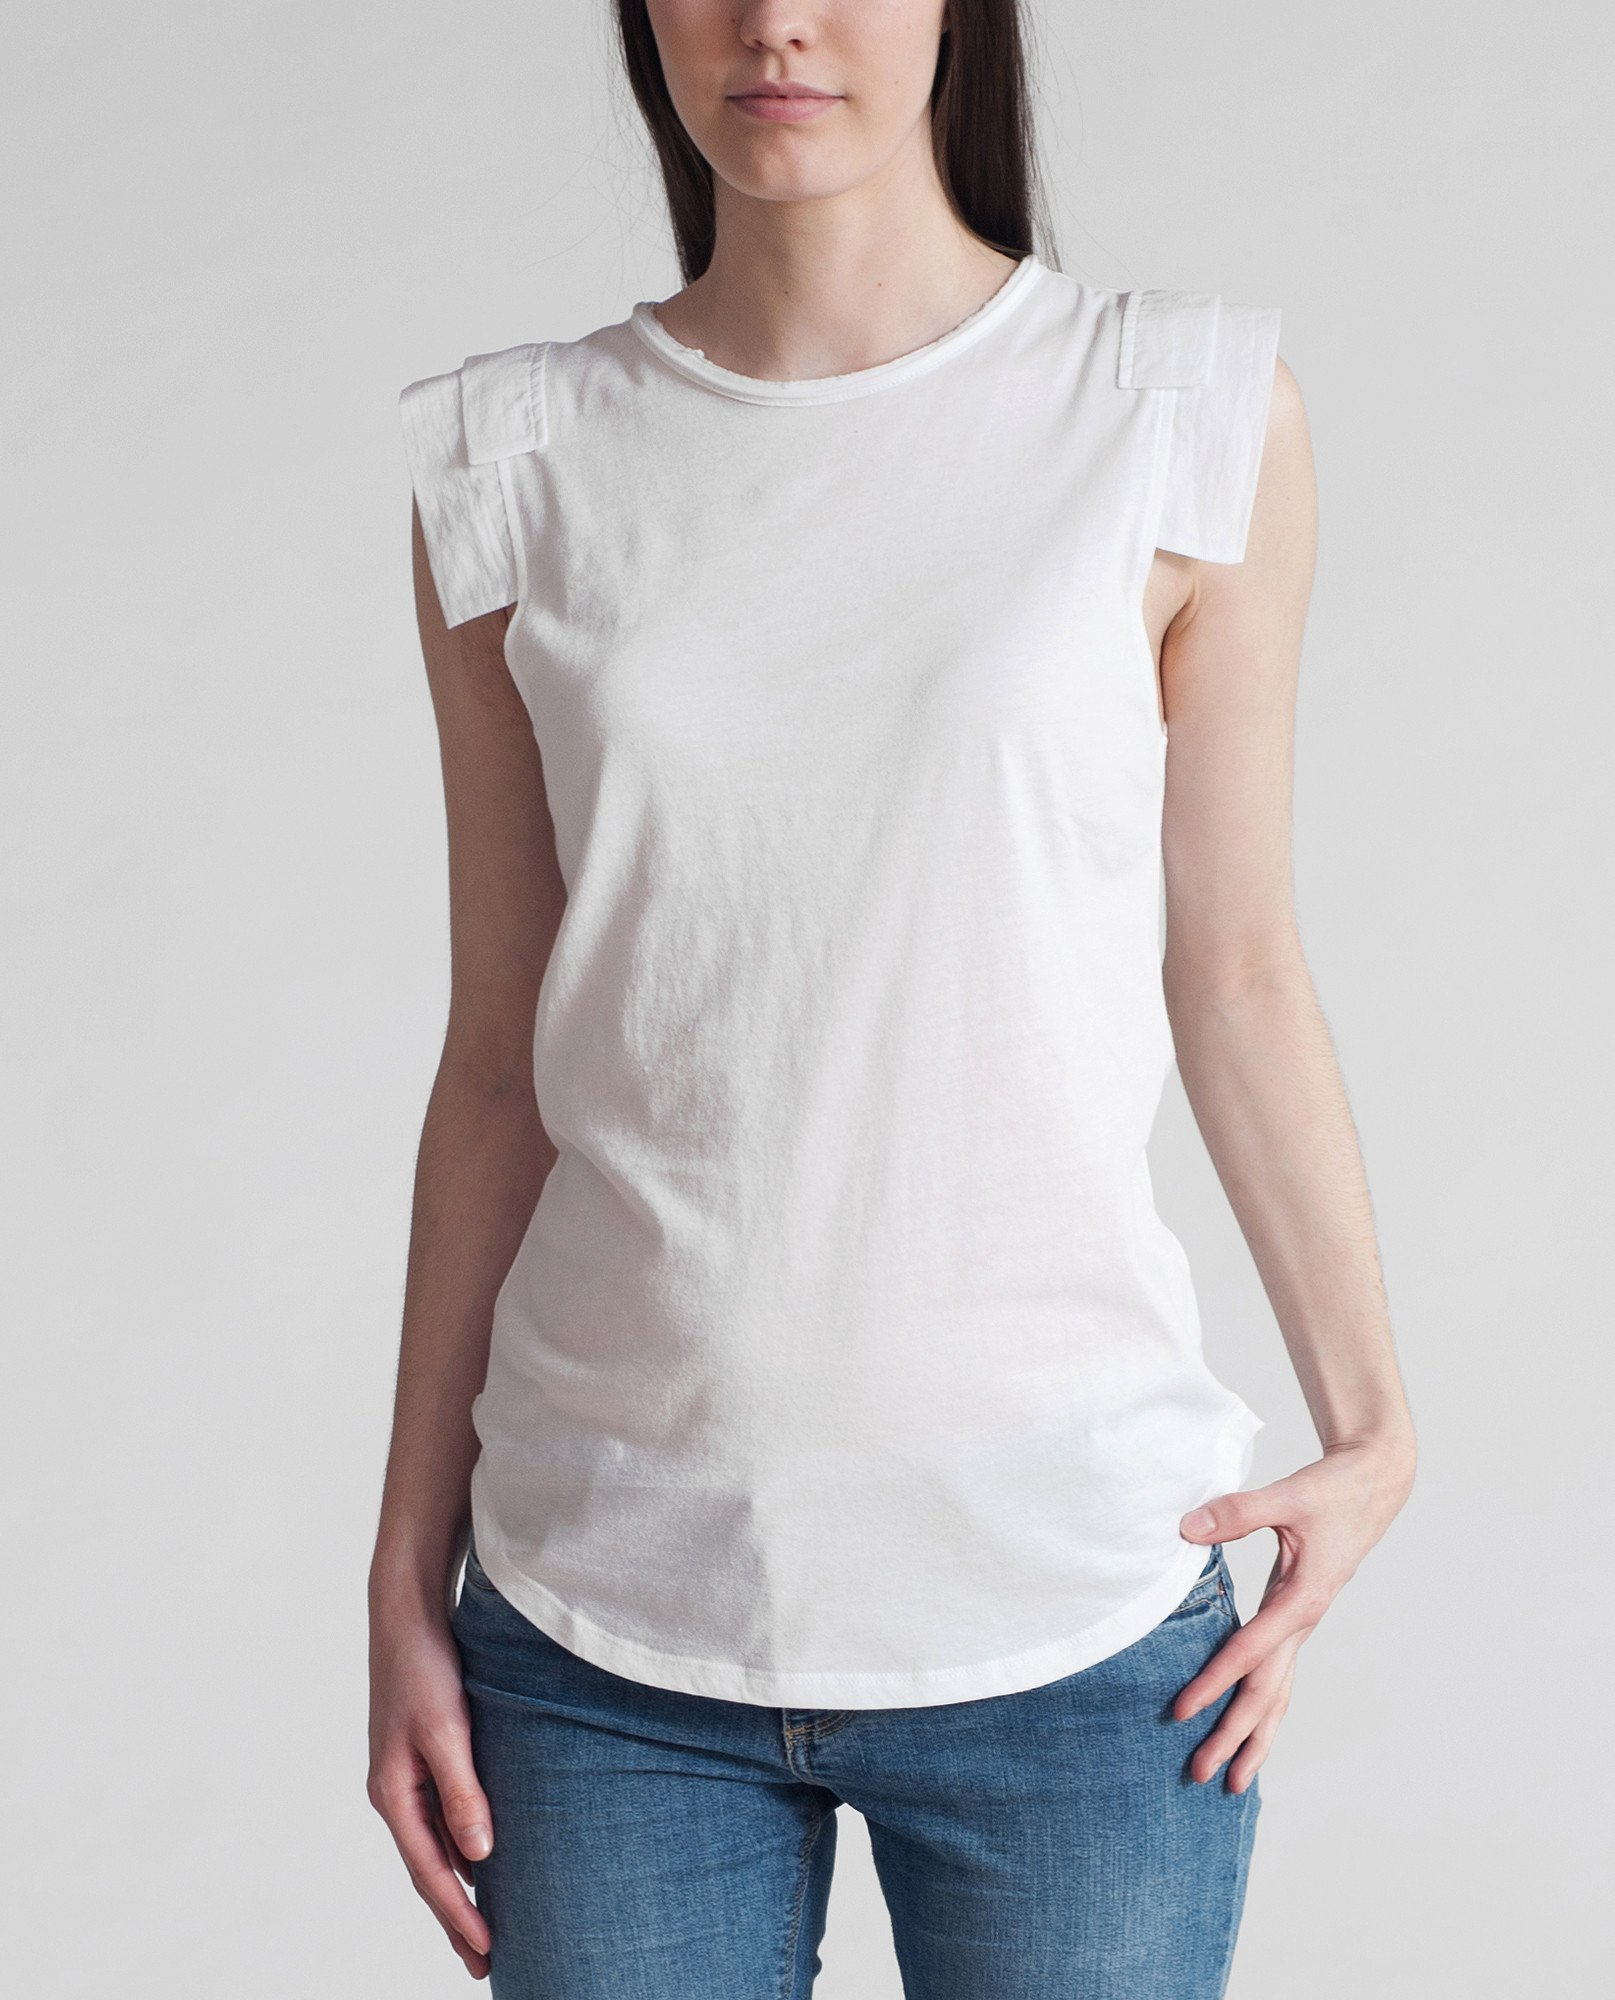 CHARITY Organic Cotton Top In White from Beaumont Organic